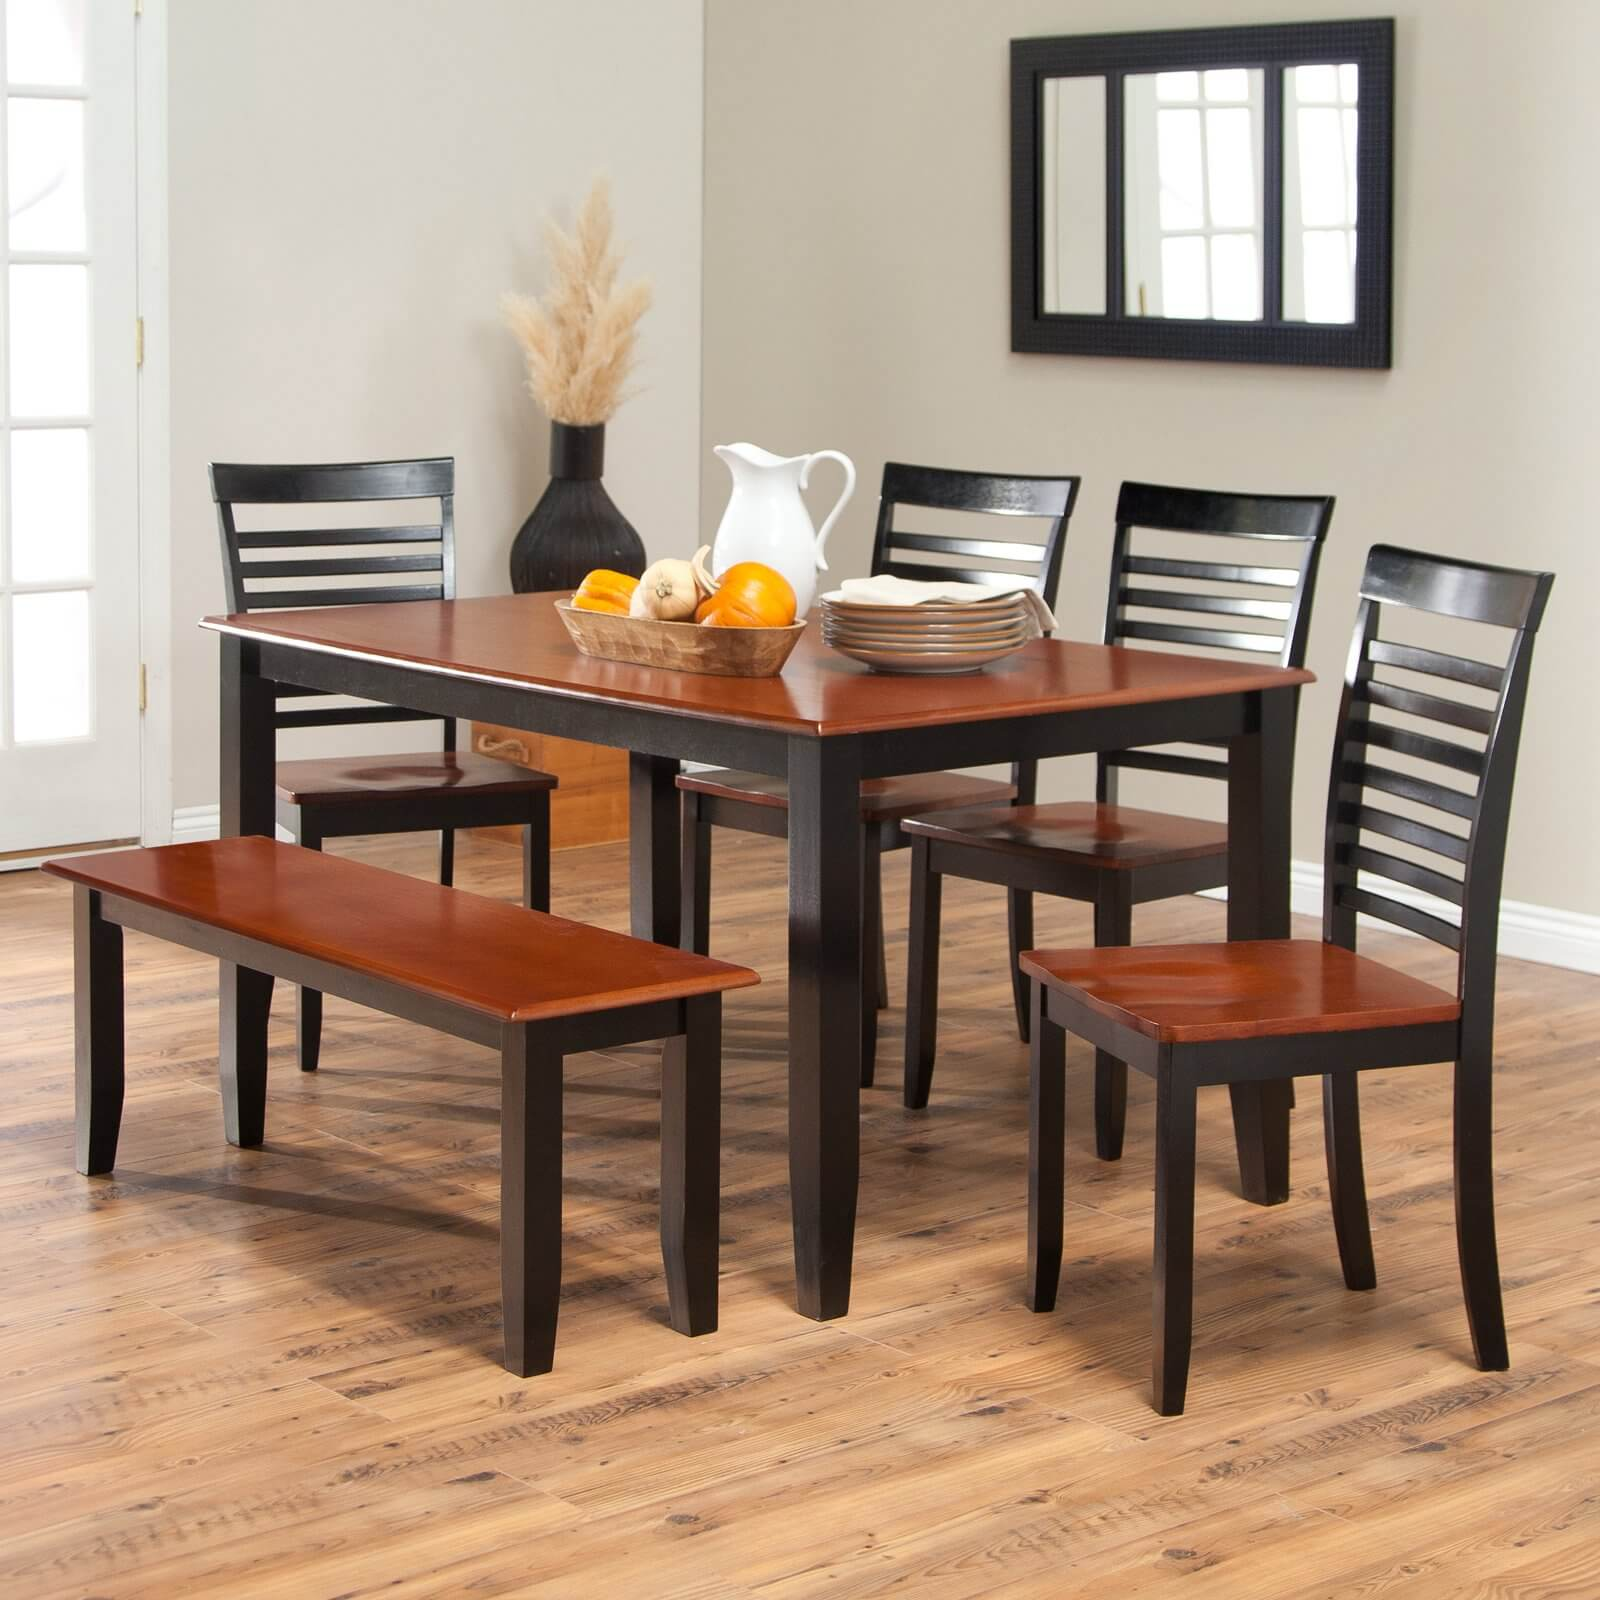 Dining Benches: 26 Big & Small Dining Room Sets With Bench Seating